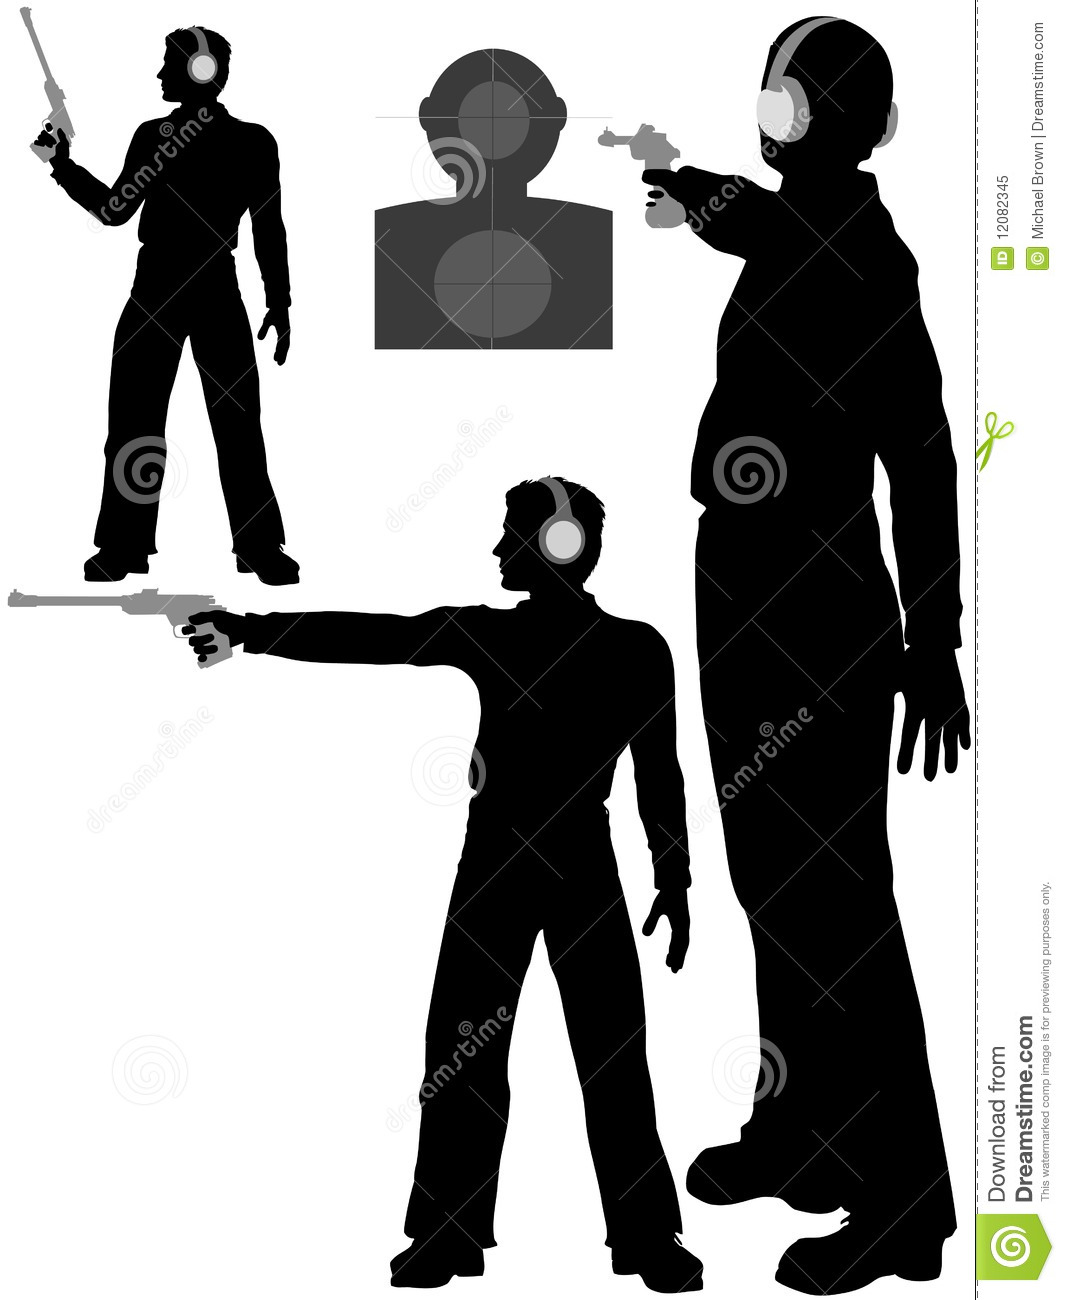 Clipart target shooting download Free clipart man with gun target shooting - ClipartFest download